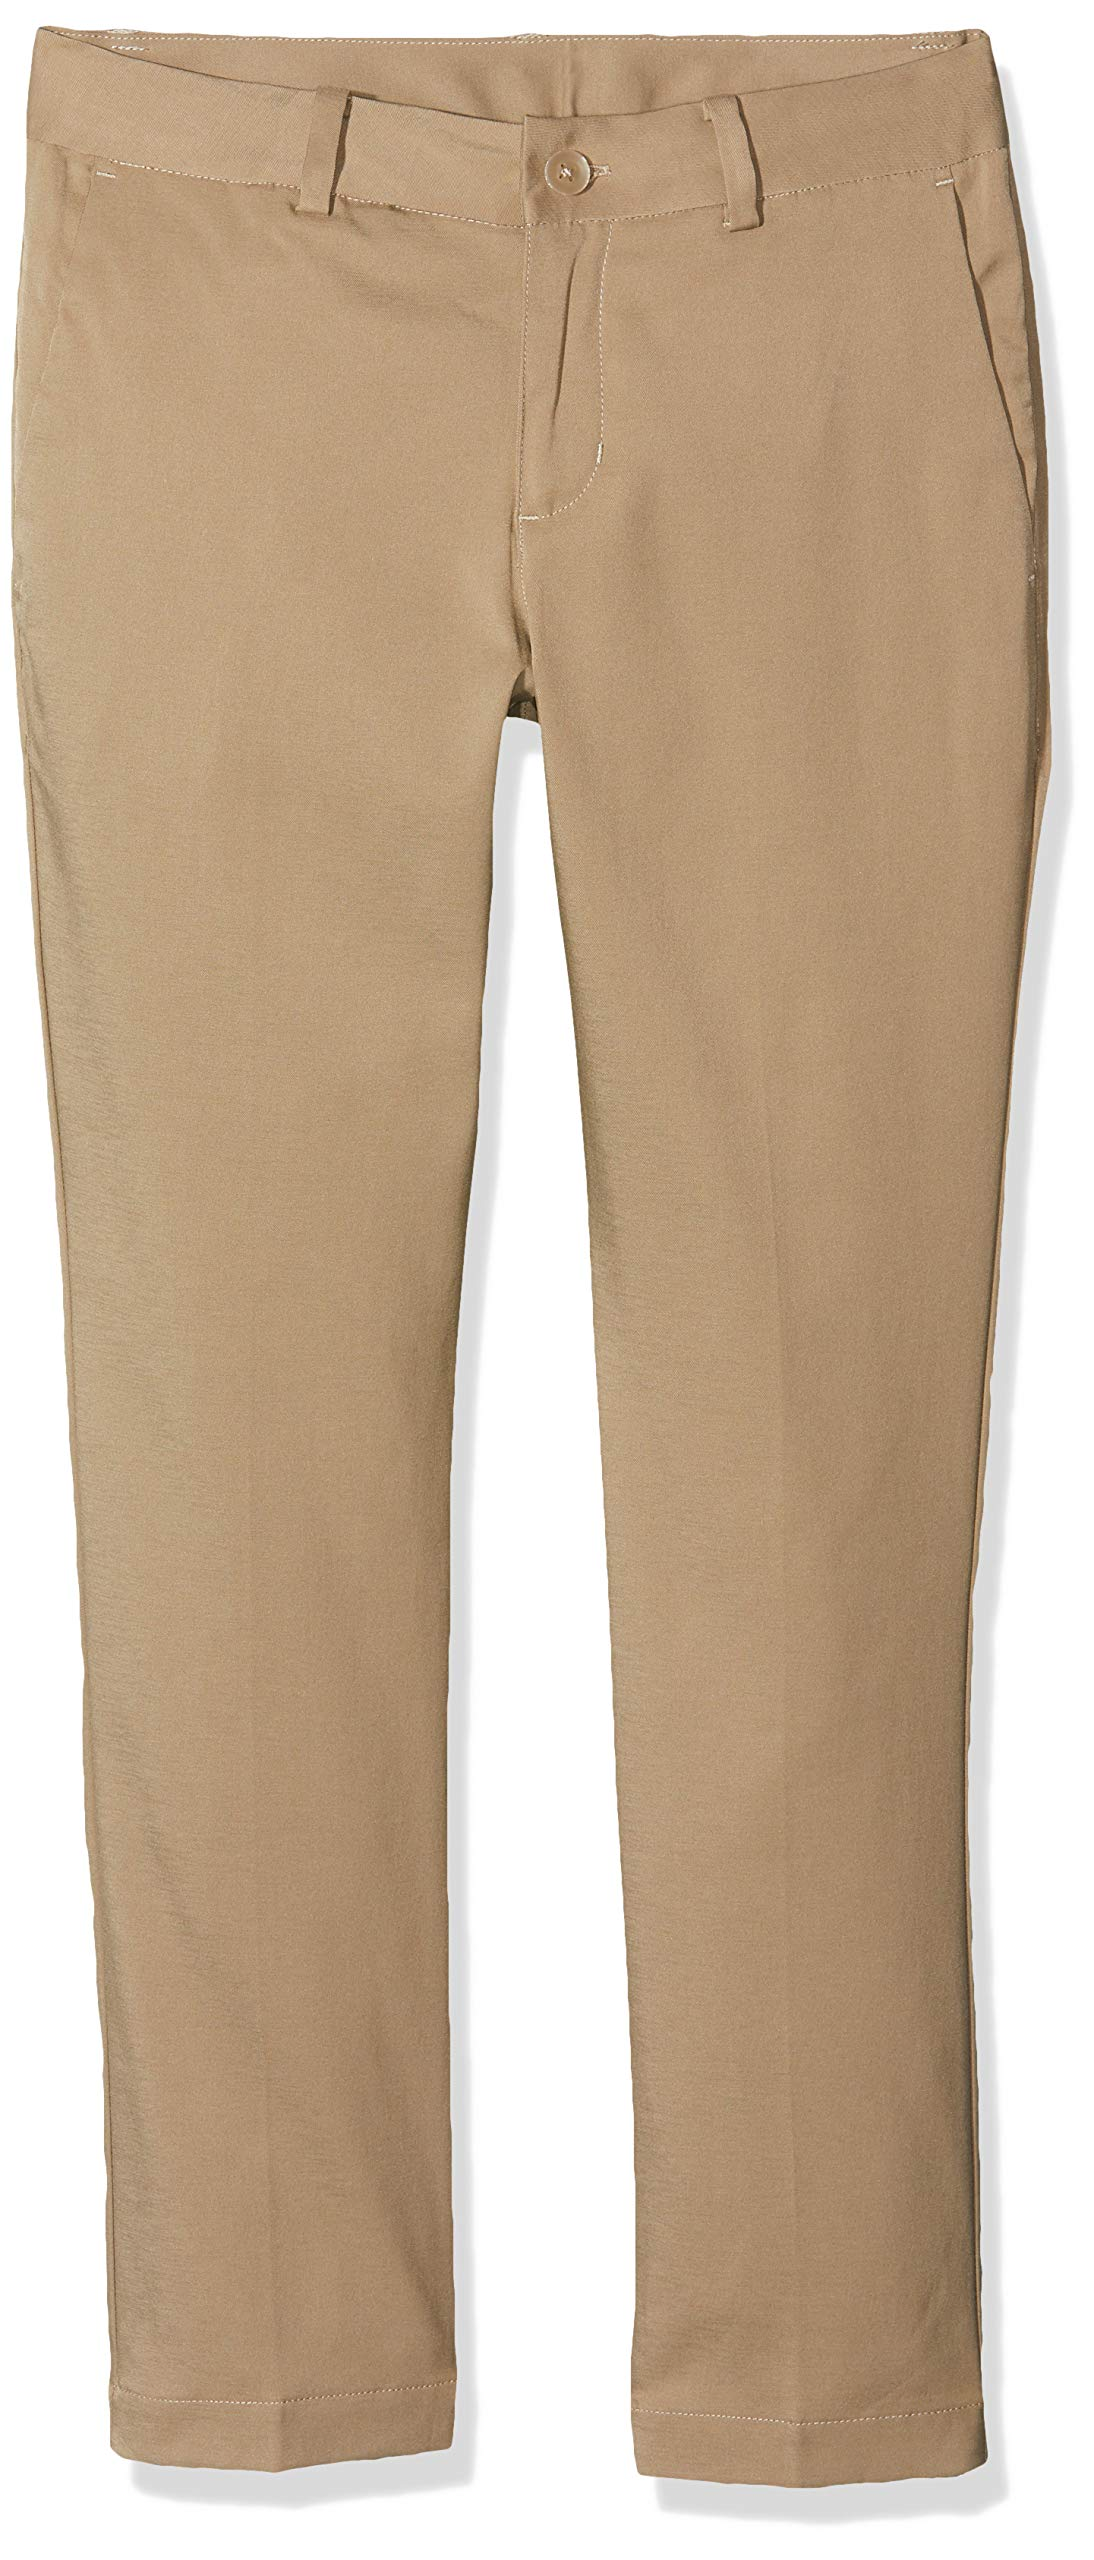 Nike Boy's Flex Golf Pants (Khaki, Medium) by Nike